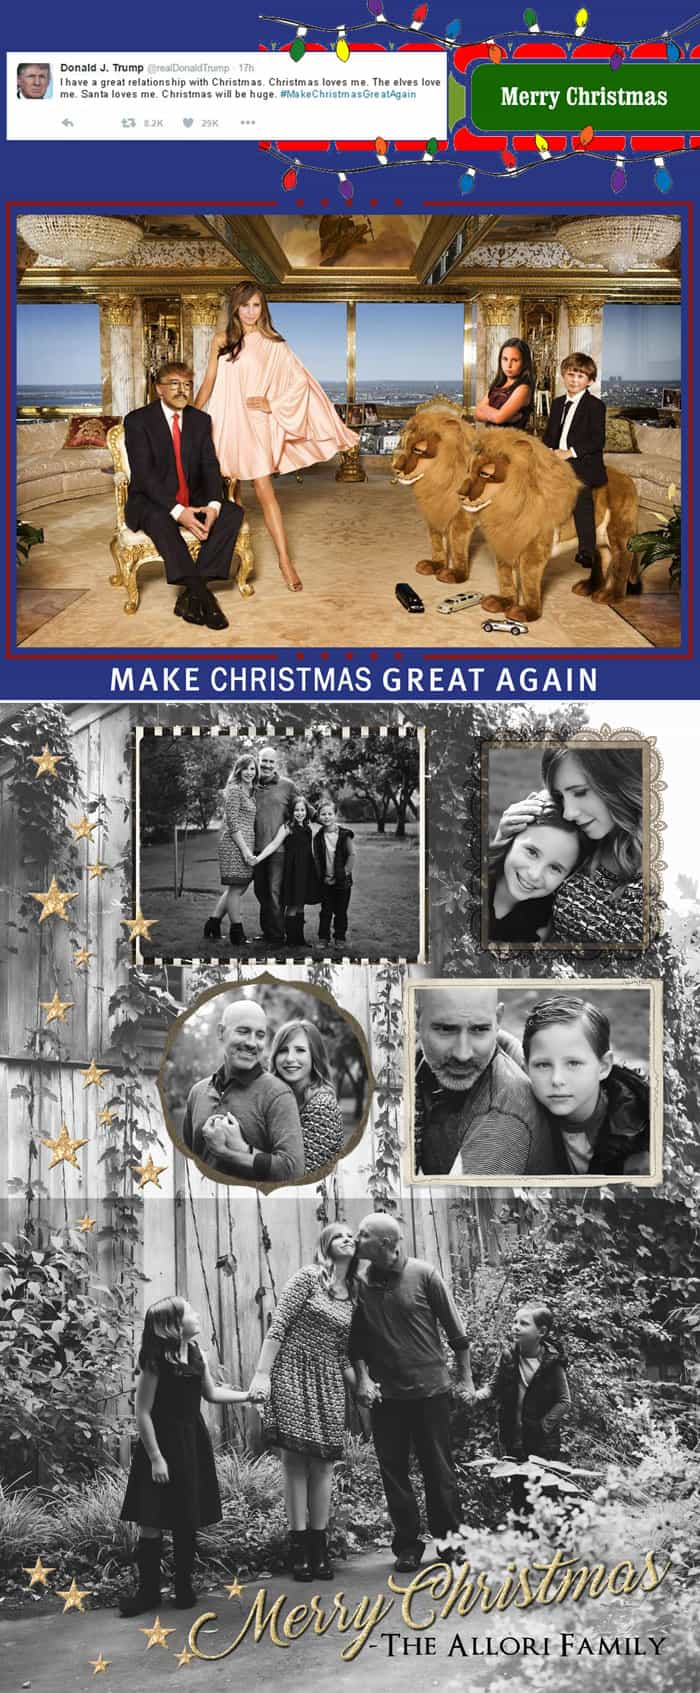 I'm sharing my favorite family holiday tradition with you: our the-fun-is-in-the-details sterotype mockery Holiday Cards! This year the cards went out two months early for a very special election edition!!!